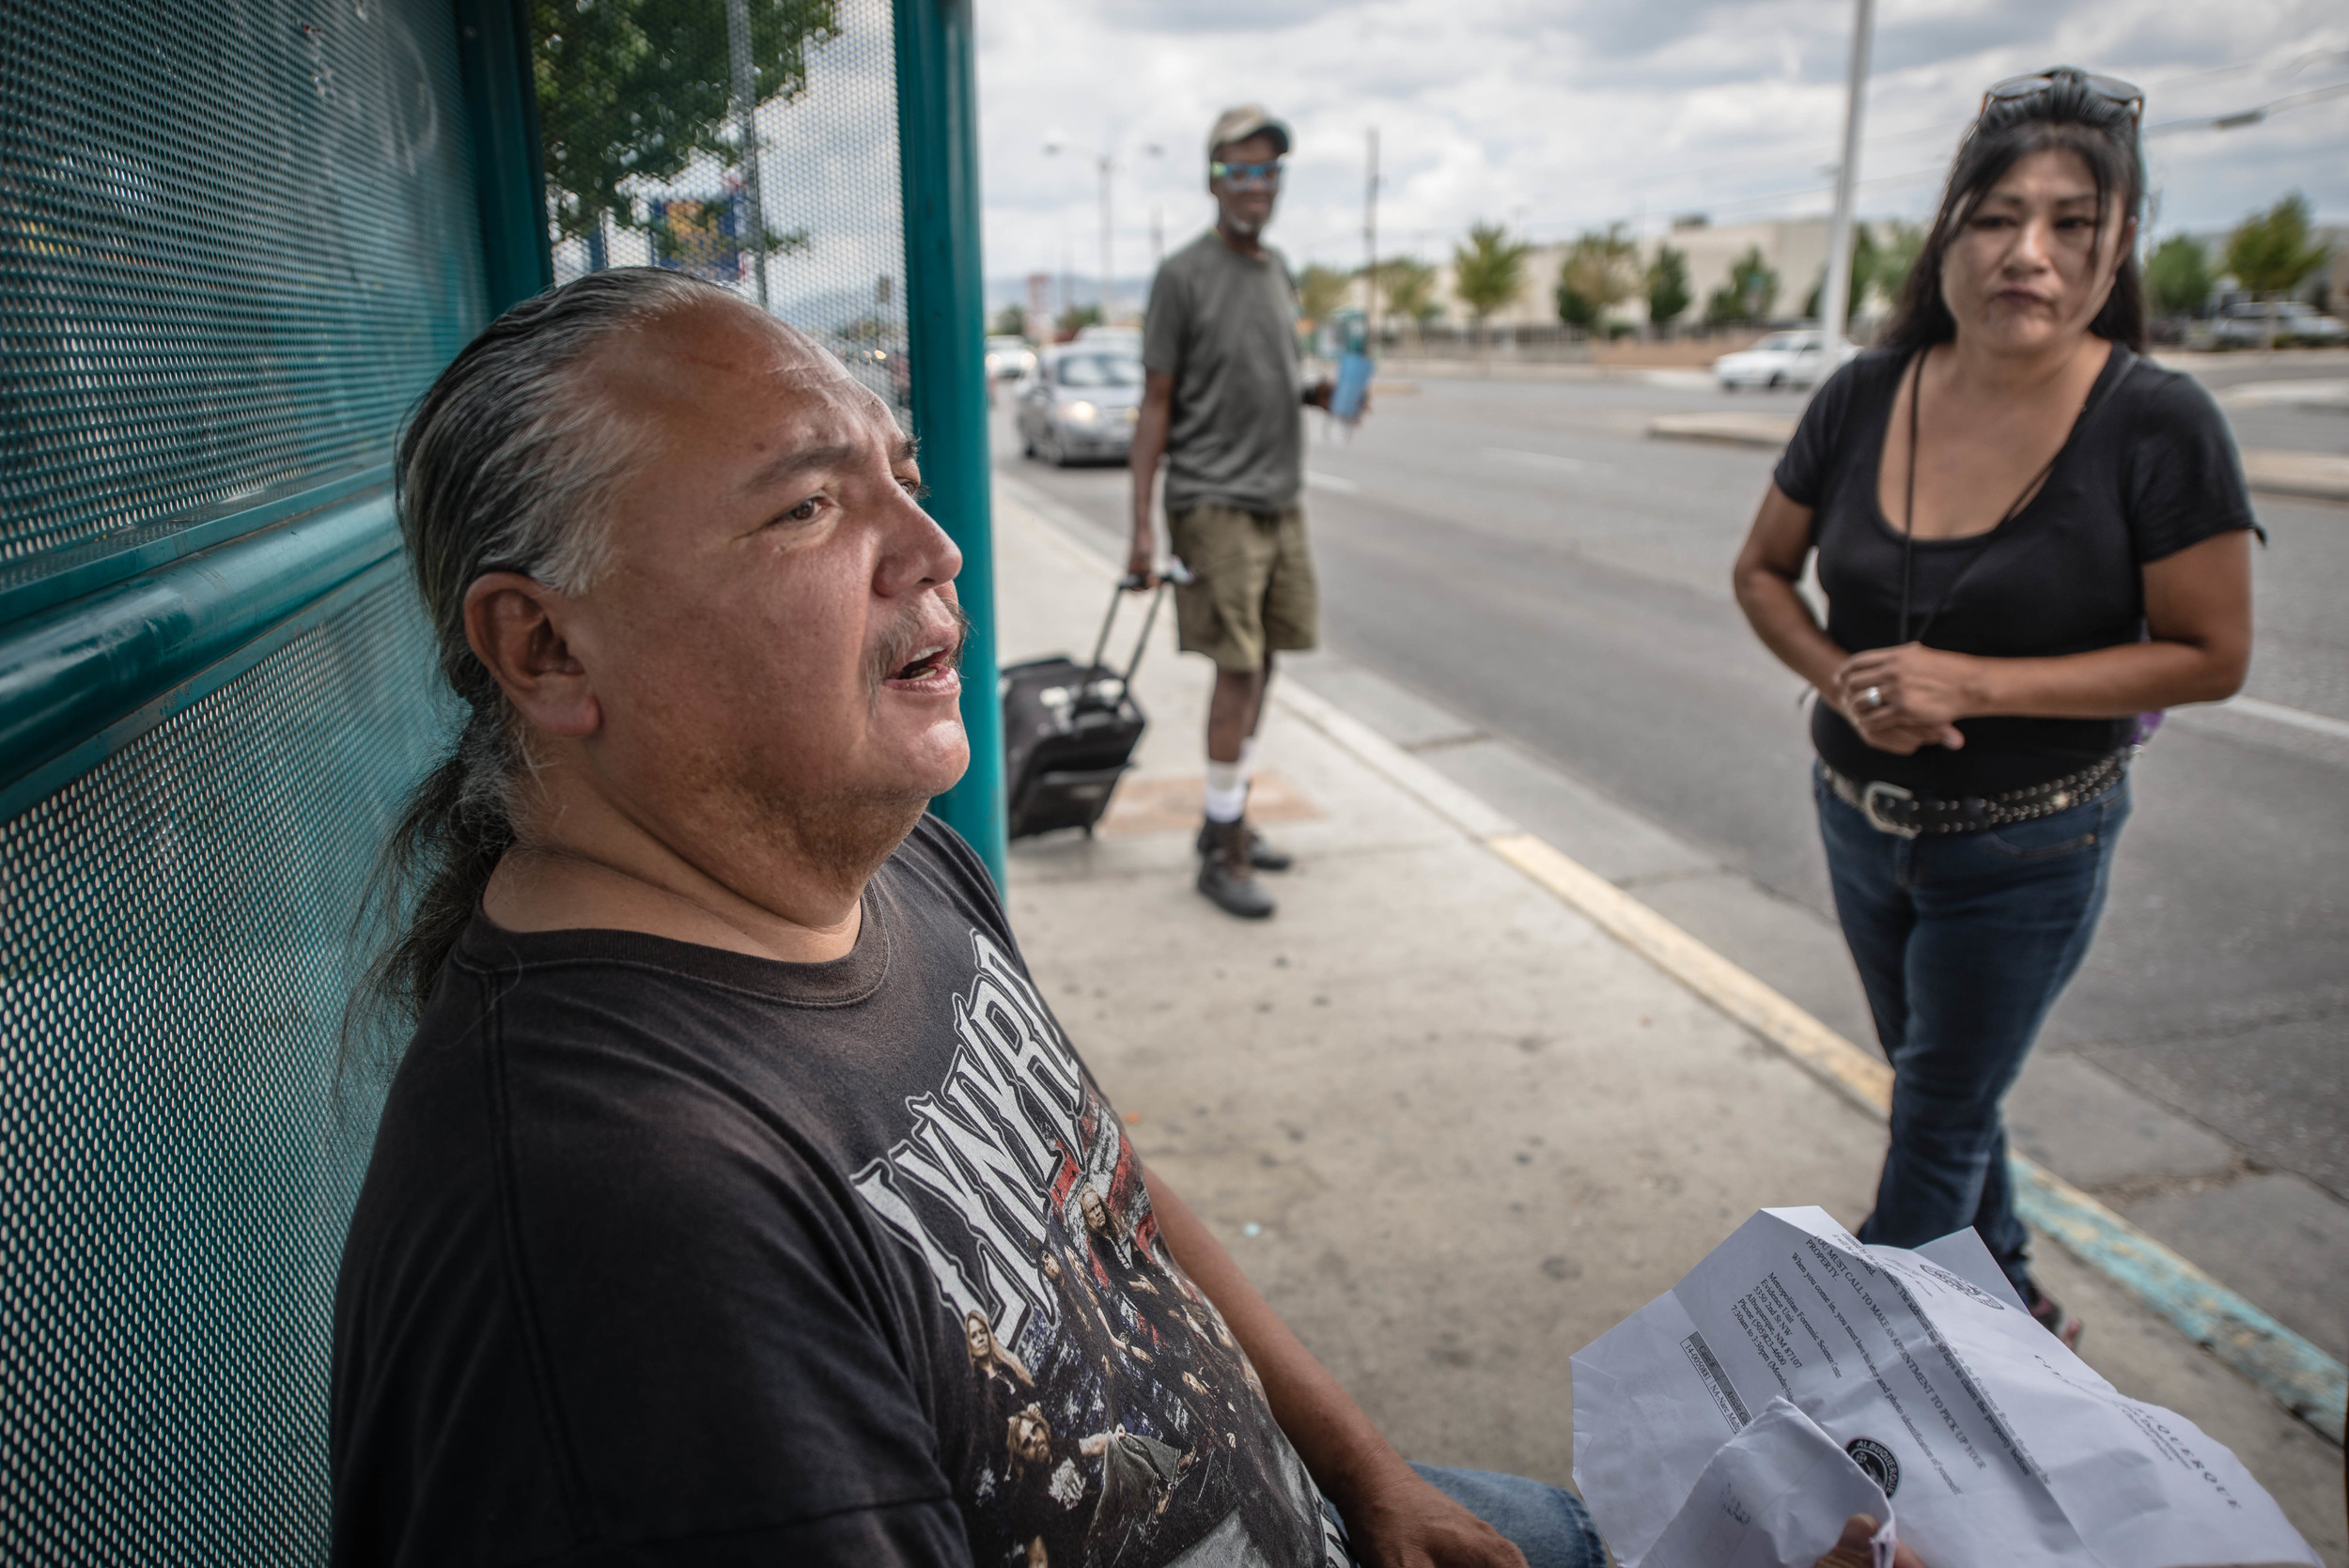 A Native American man and his wife talk about their experiences of being assaulted on the streets of Albuquerque.